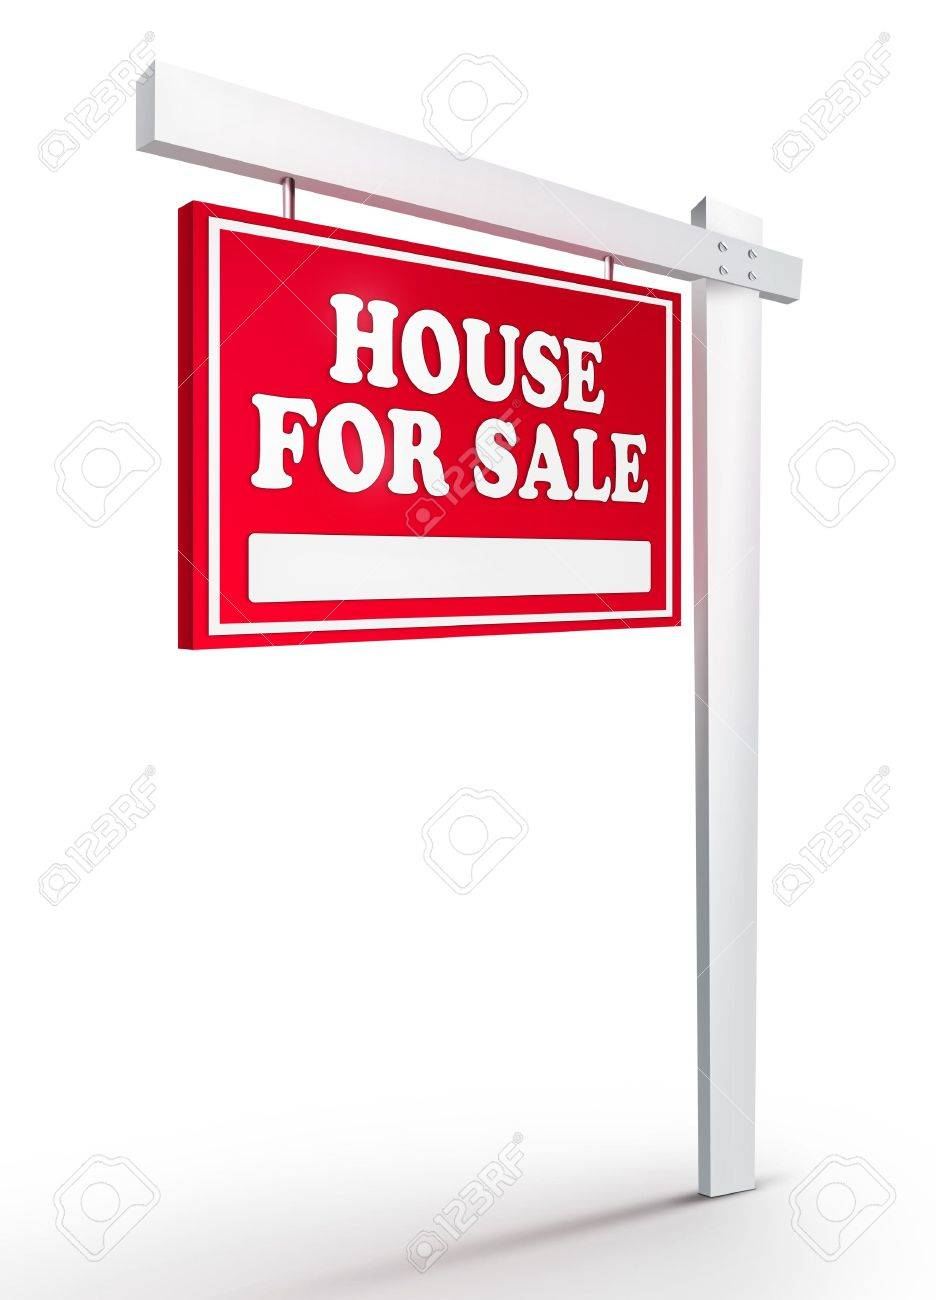 Real Estate Sign � House For sale on white background. 2D artwork. Computer Design. Stock Photo - 6371019